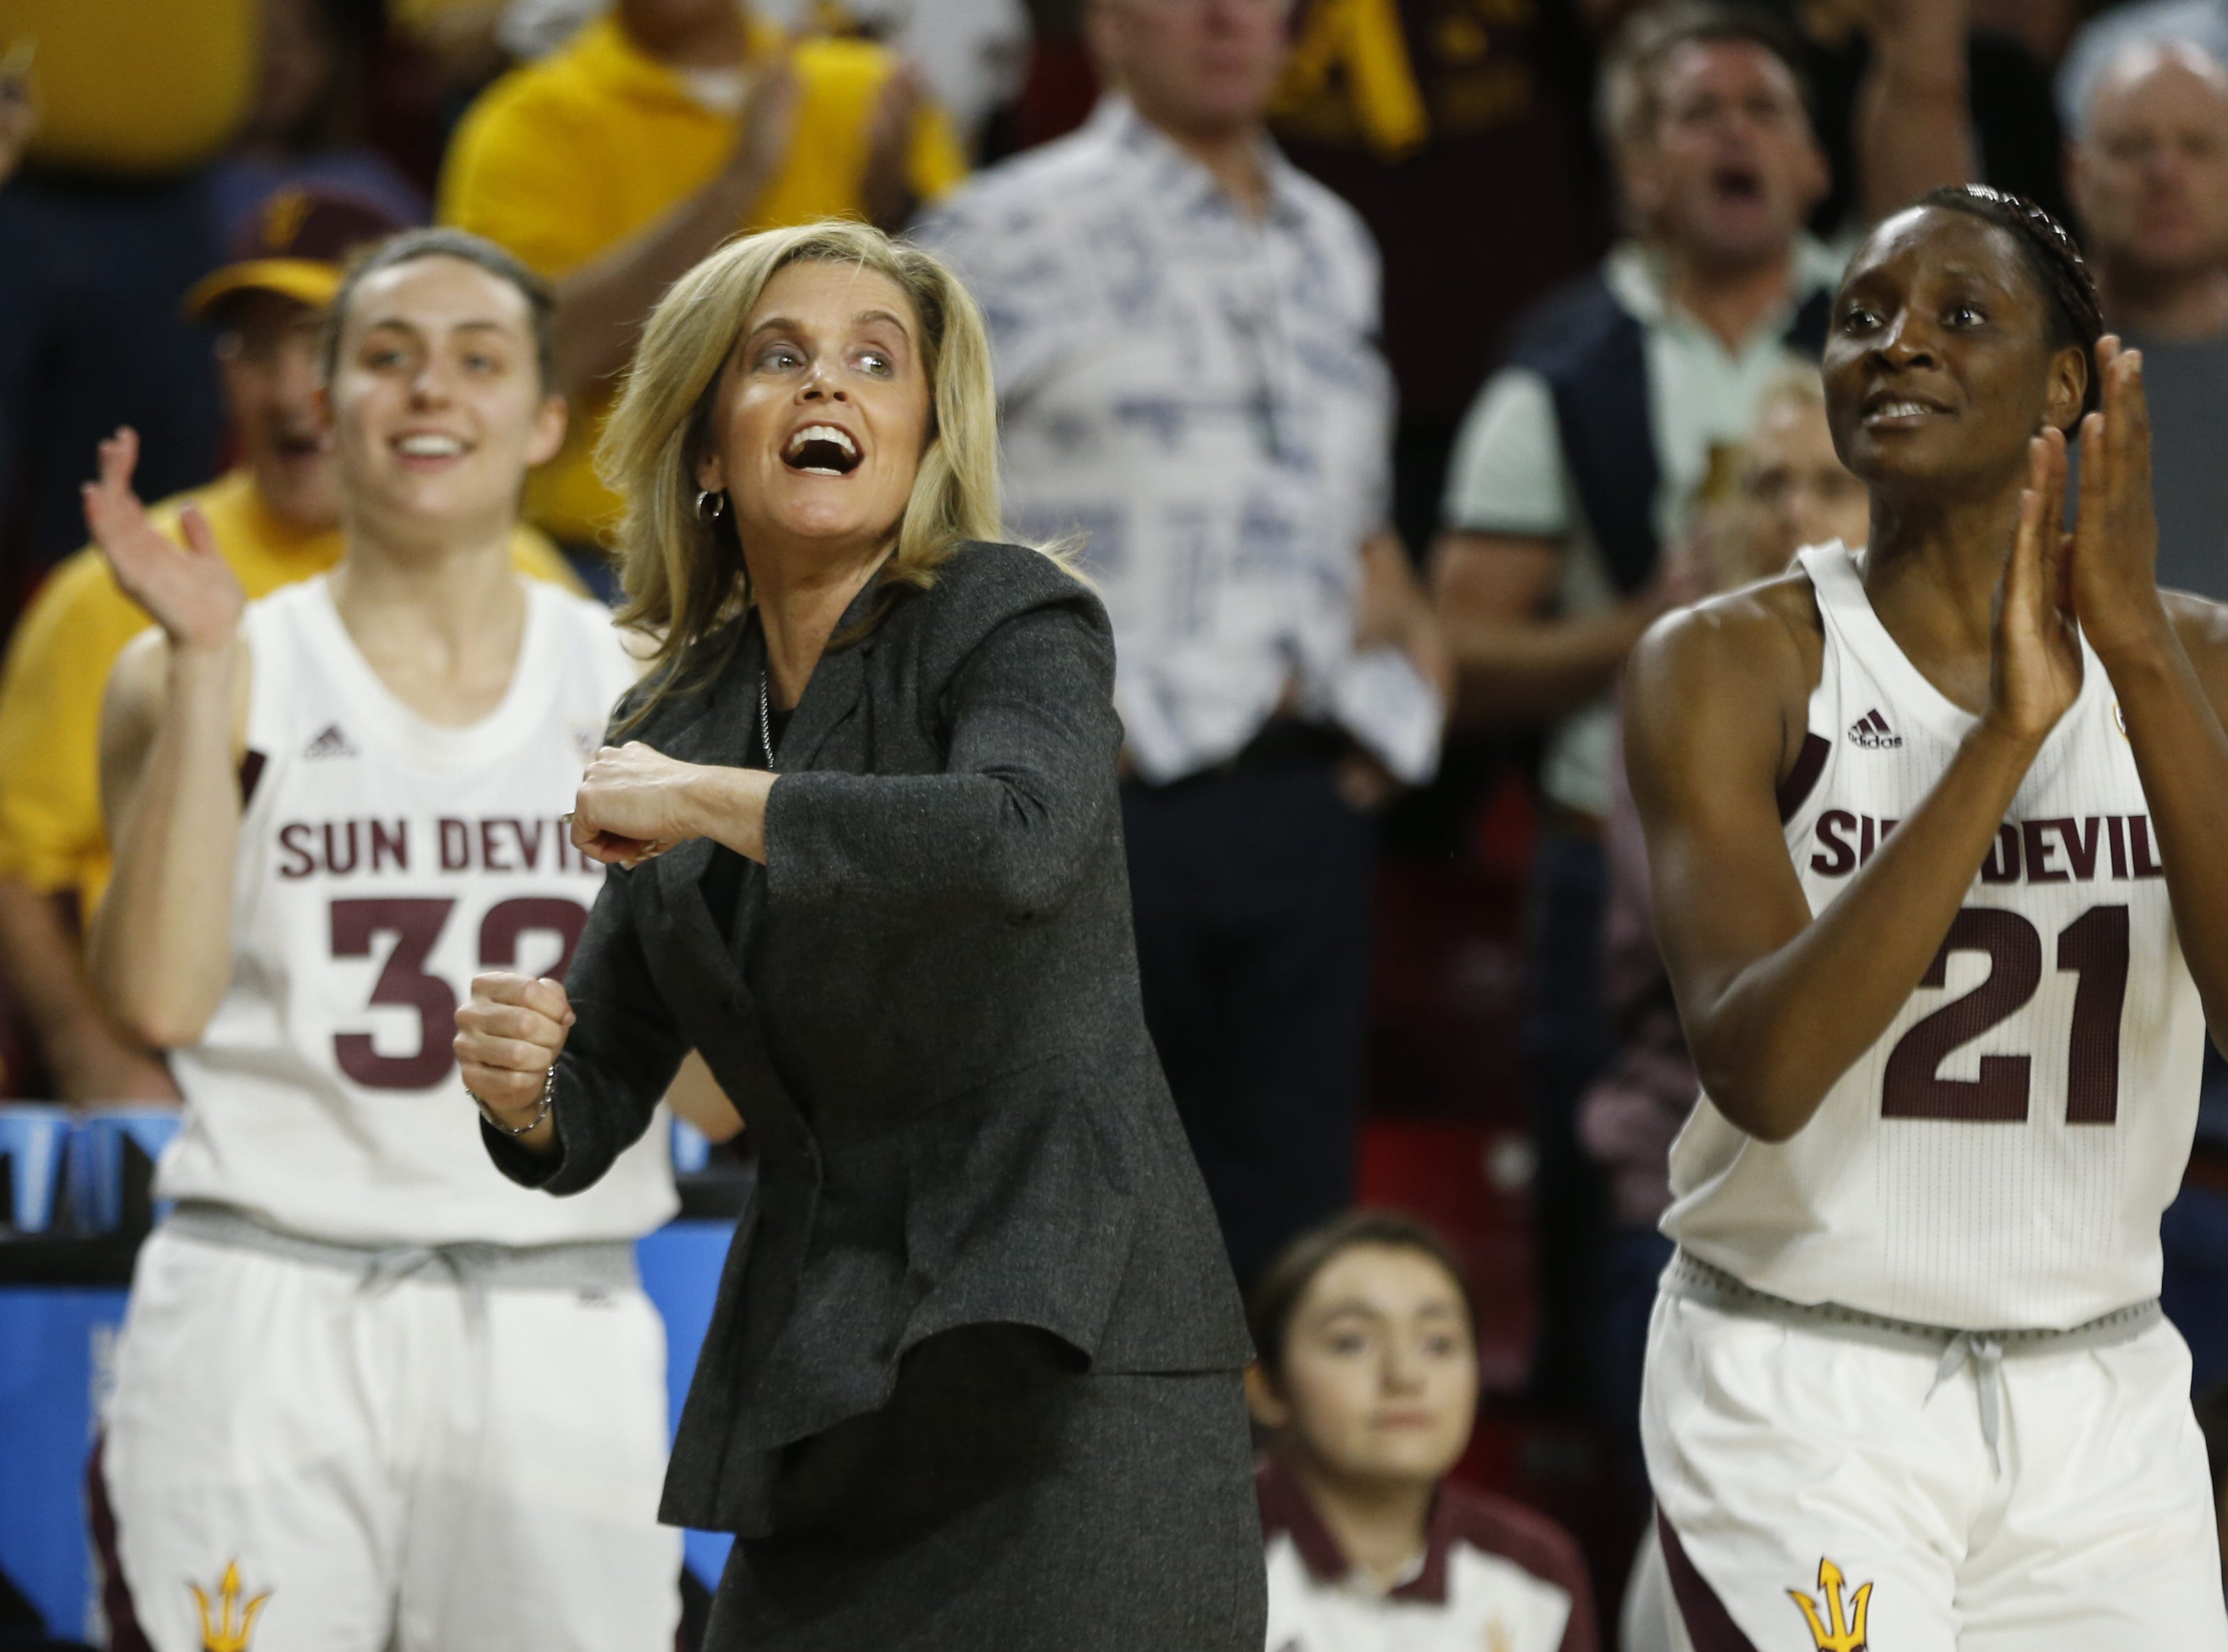 ASU's Charli Turner Thorne reacts with her team after a basket and foul call against Oregon State during the second half at Wells Fargo Arena in Tempe, Ariz. on March 1, 2019.